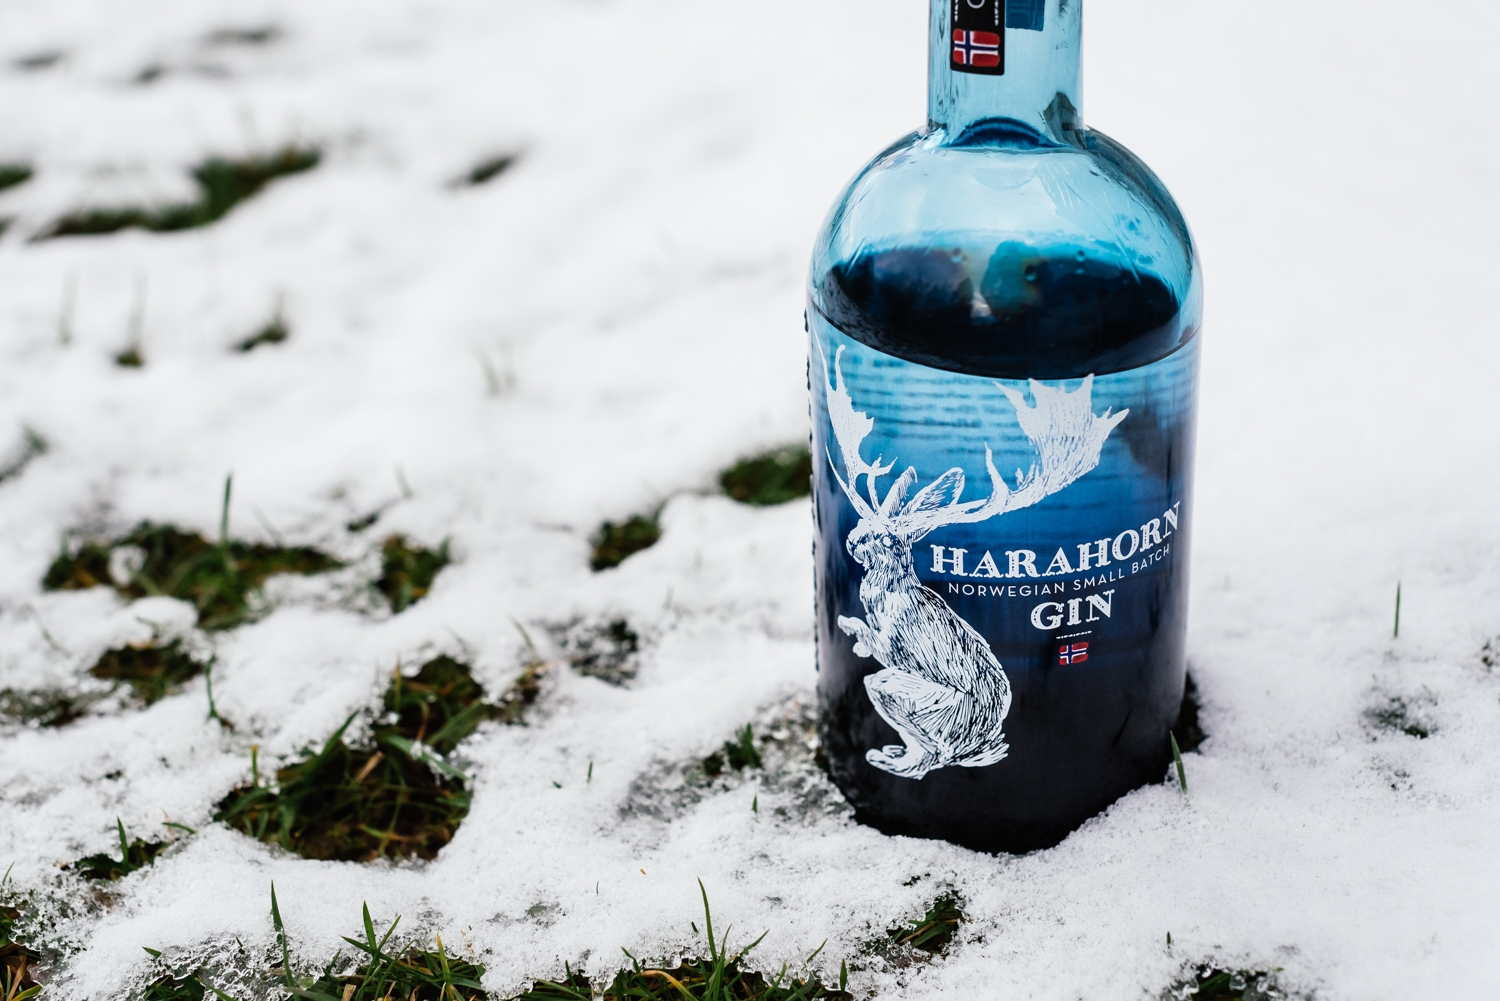 You are currently viewing Harahorn Gin | Small Batch Gin aus Norwegen